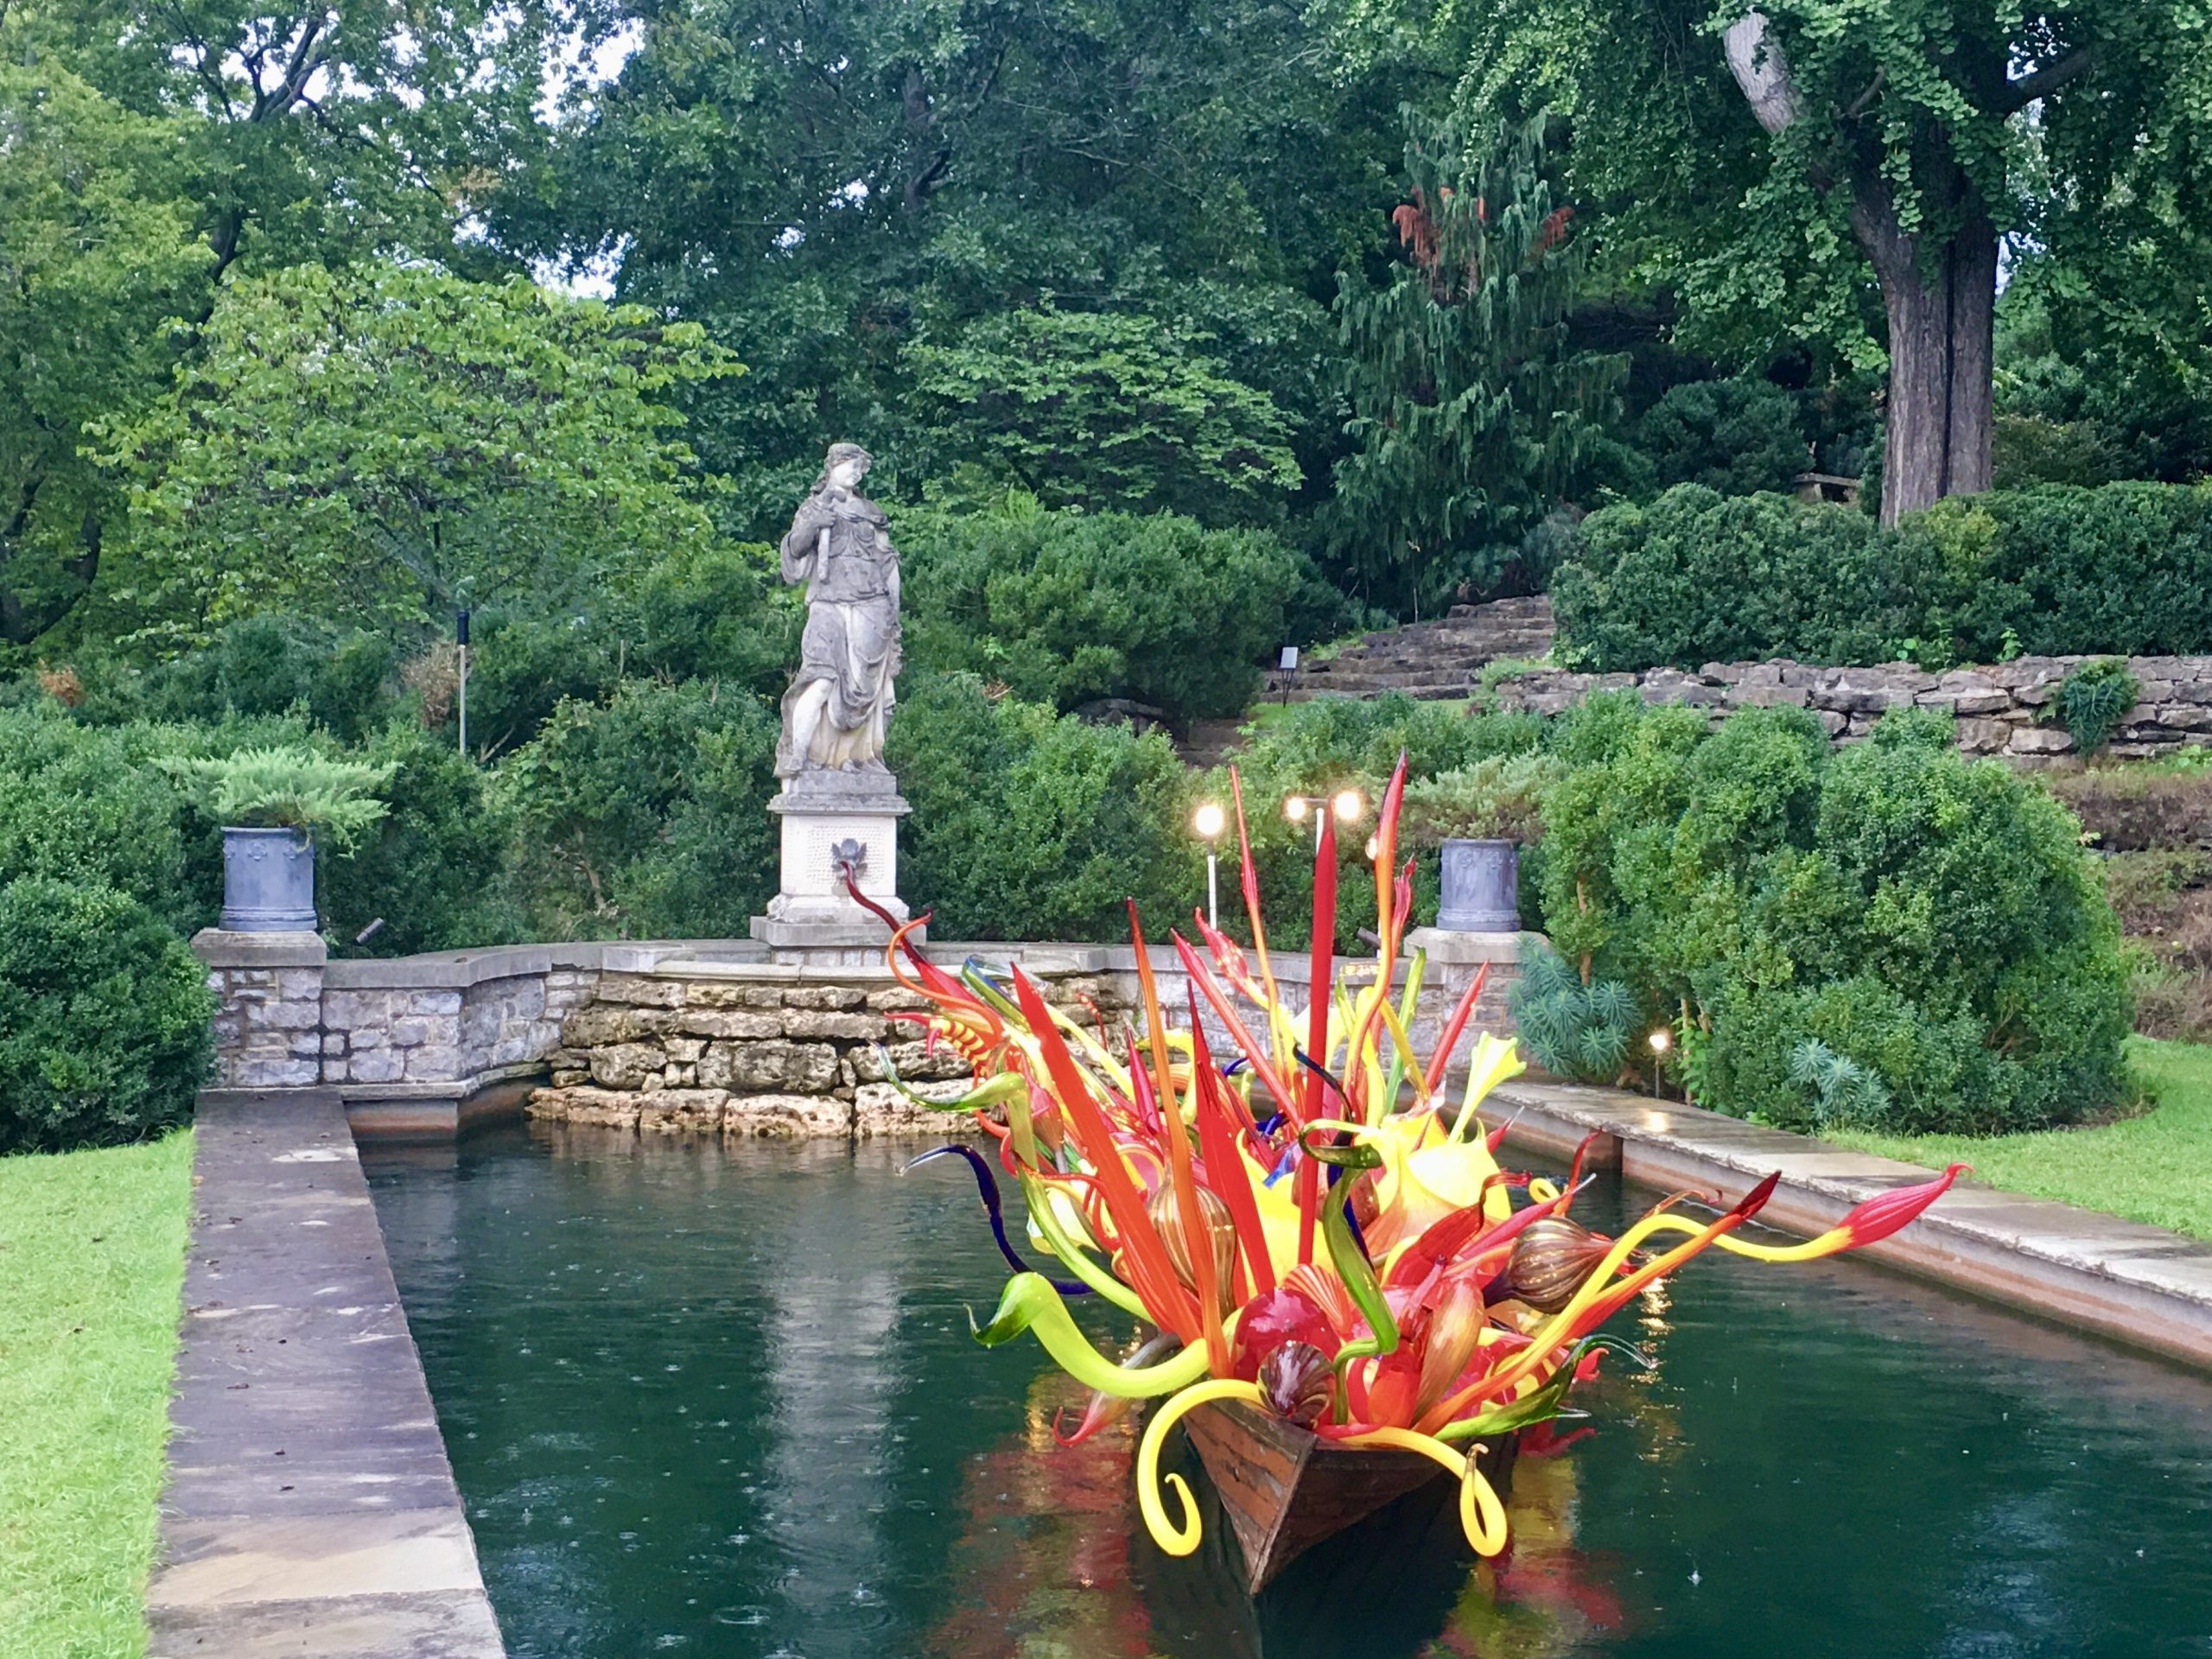 Photo of Chihuly at Cheekwood by Kathryn Darden for ChristianActivities.com